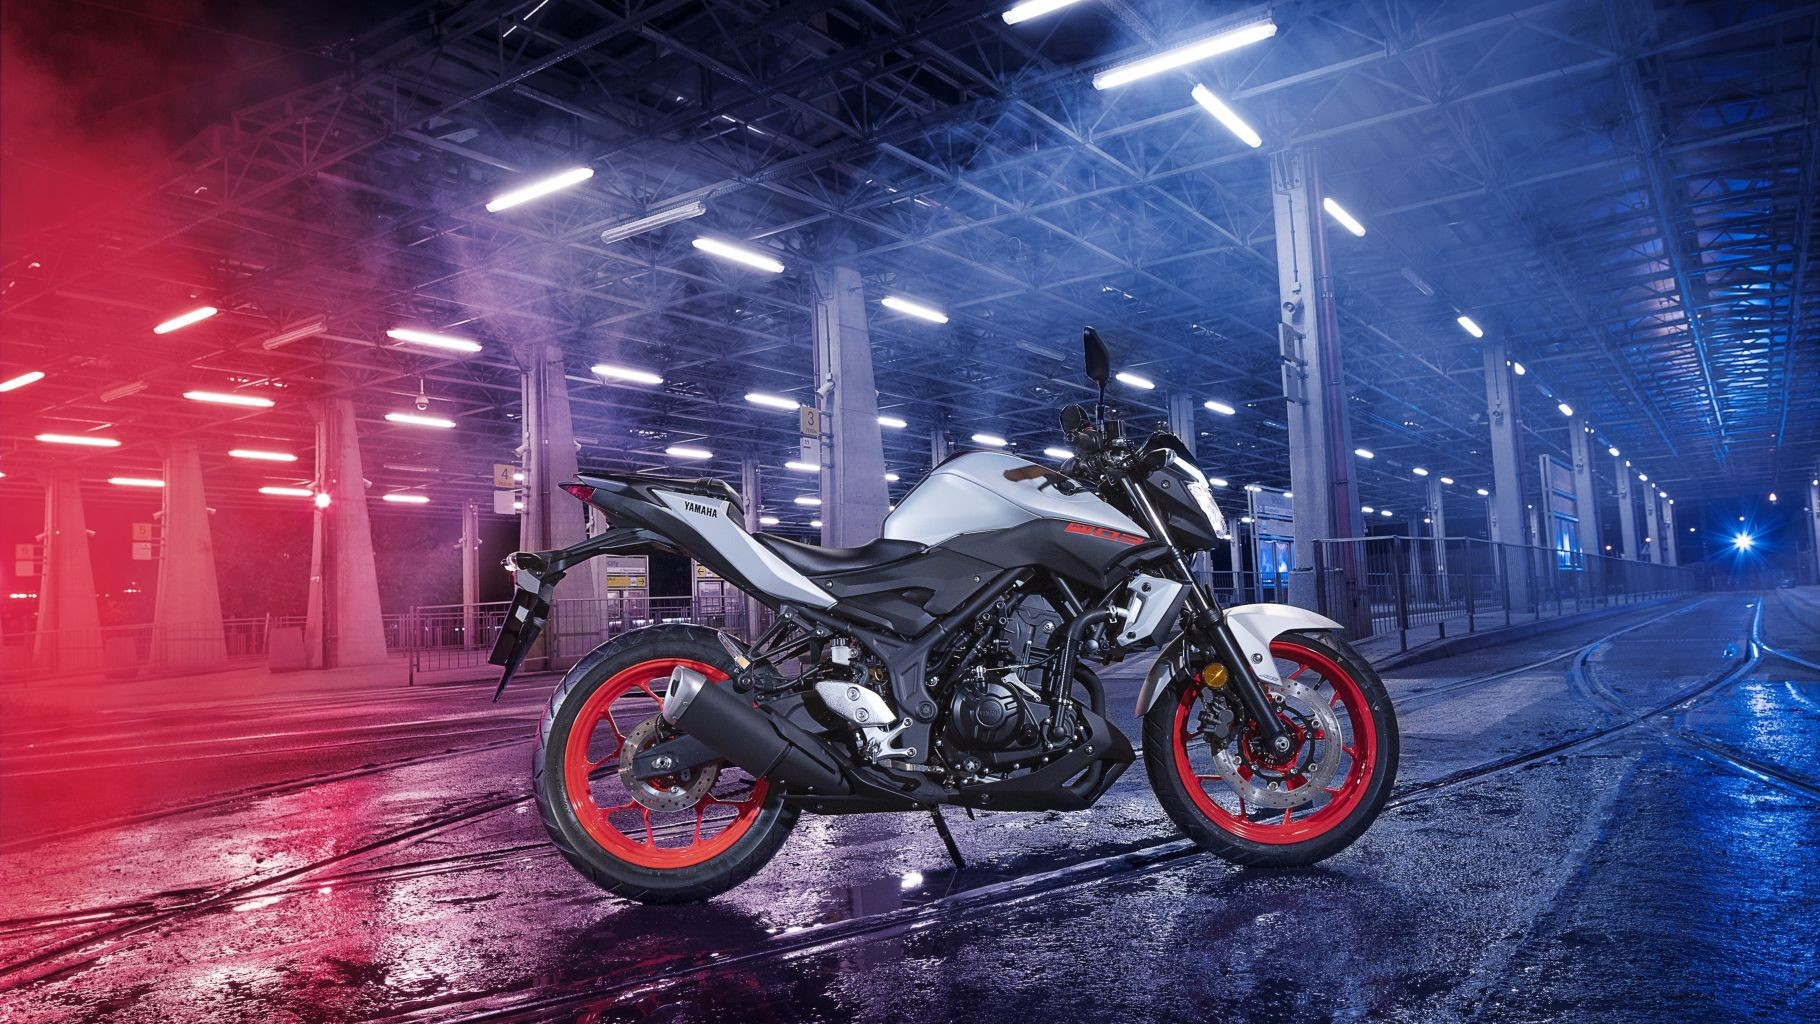 2018-yamaha-mt-03-eu-night-fluo-static-13_z4PF